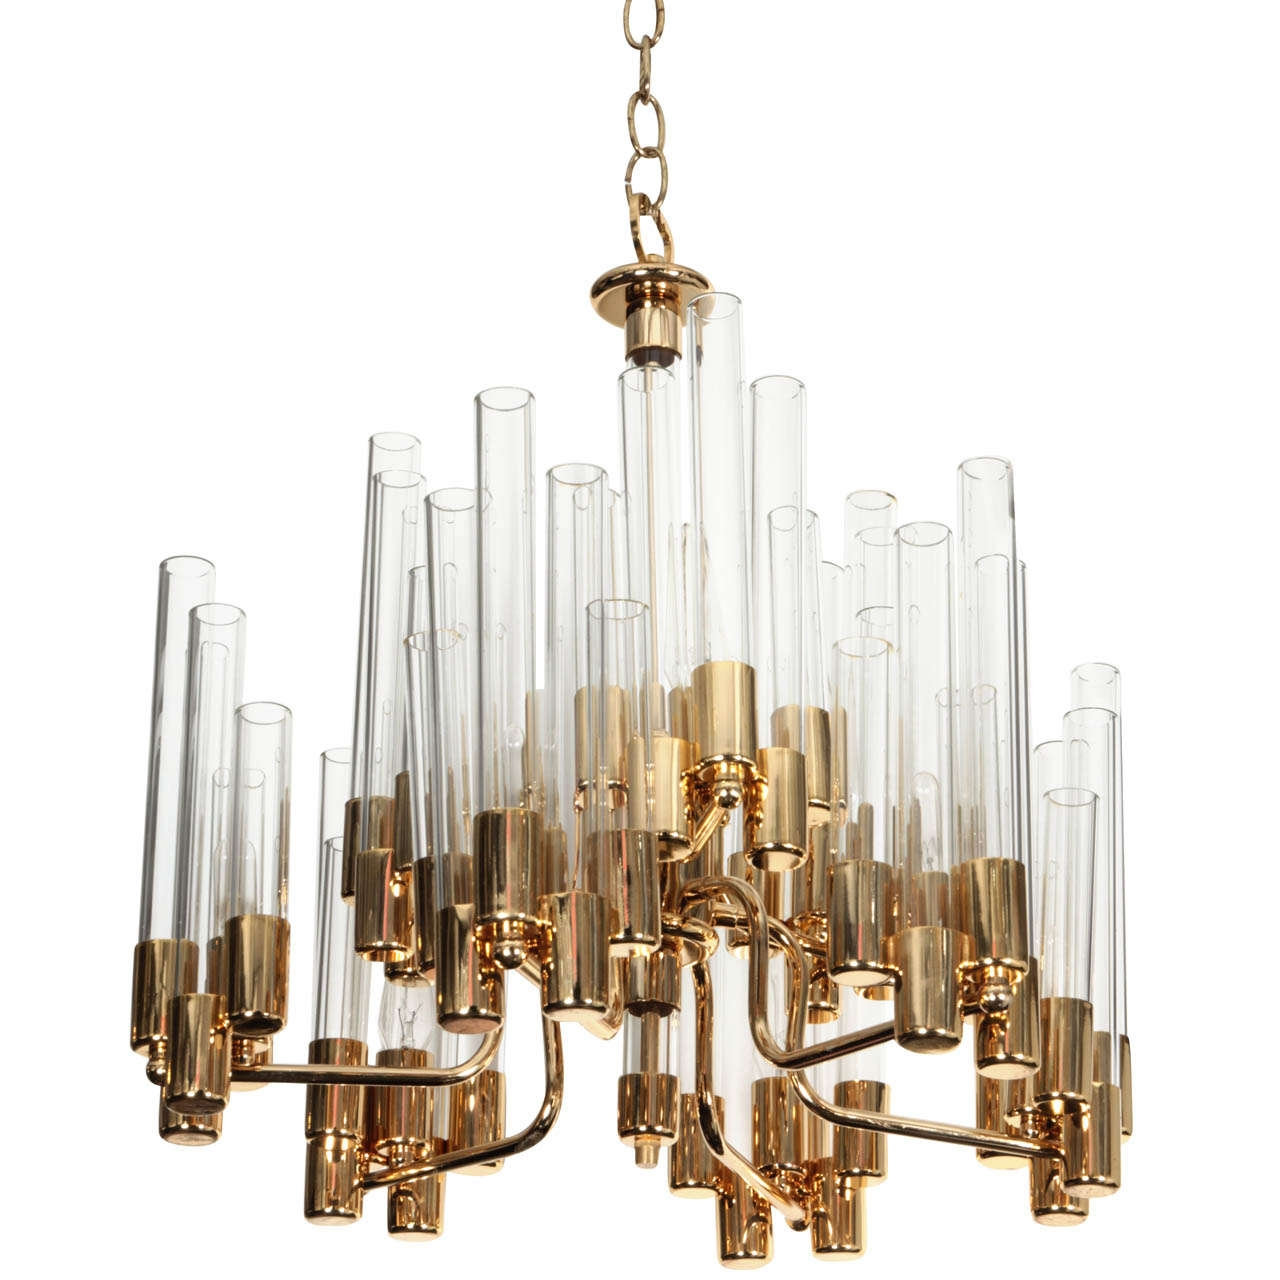 Interior Simple Glass Tube Froze Chandelier With Gold Shade Fileove Throughout Simple Glass Chandelier (Image 8 of 15)